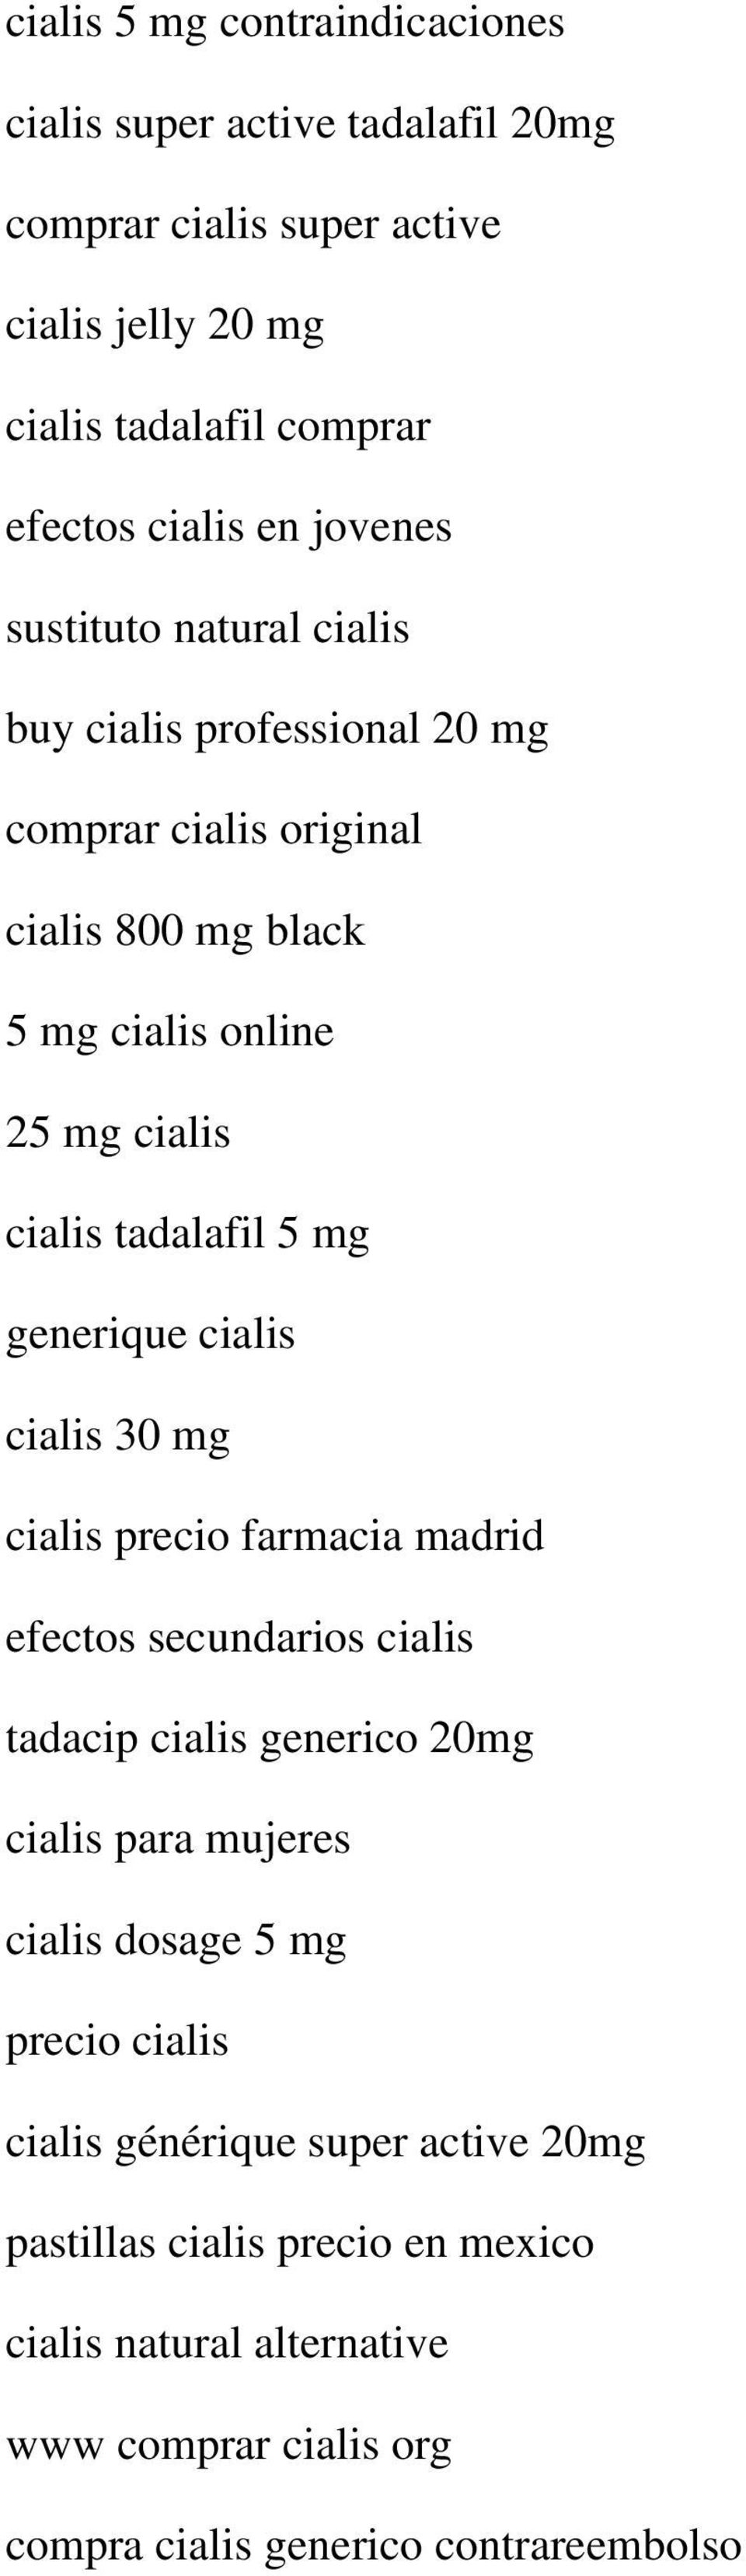 Cialis in madrid